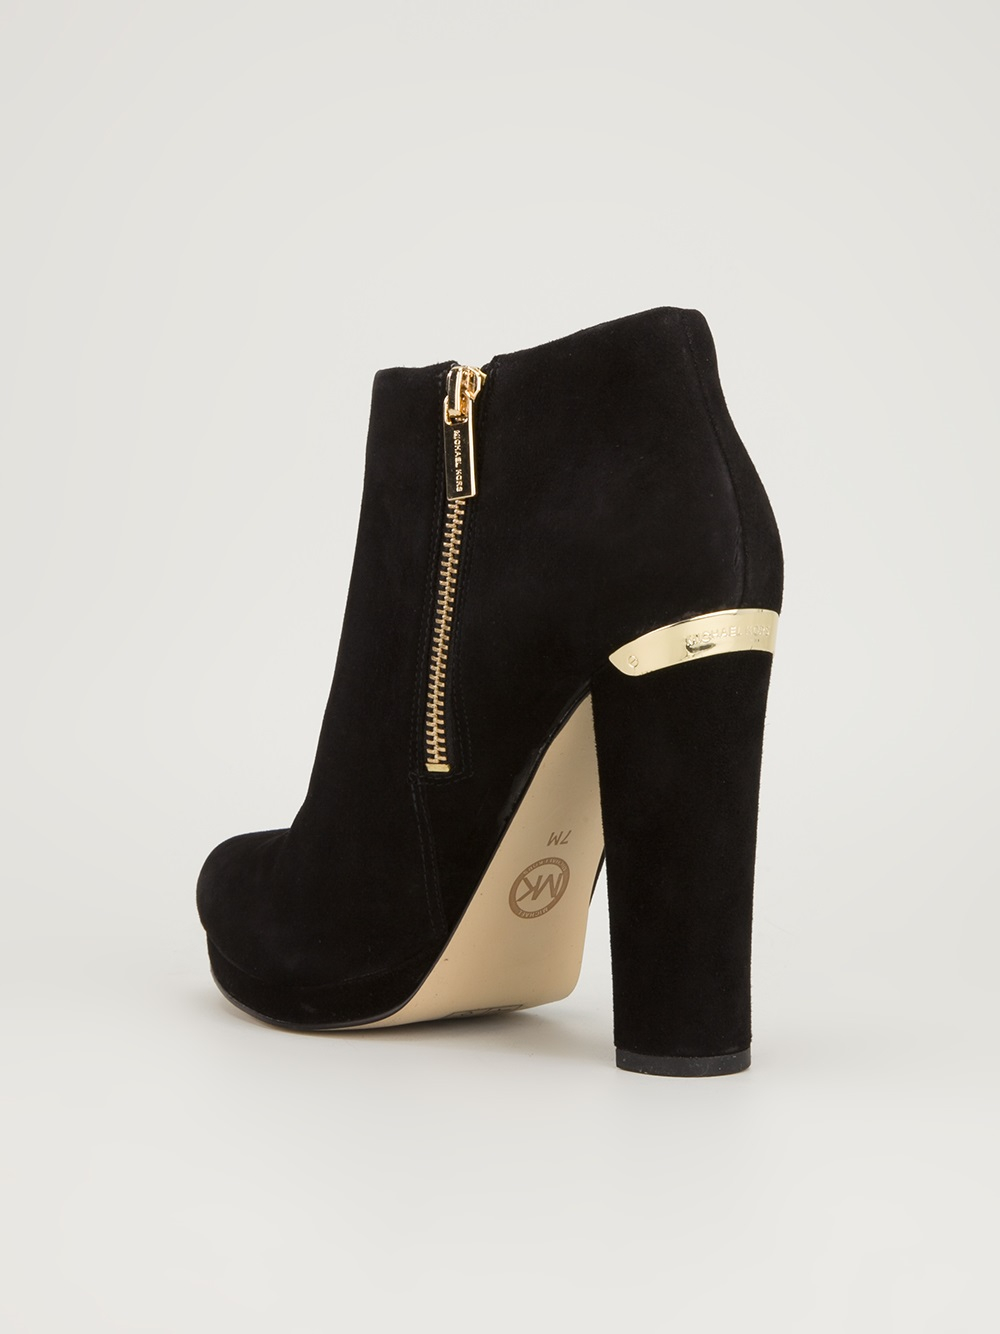 michael michael kors platform ankle boot in black lyst. Black Bedroom Furniture Sets. Home Design Ideas